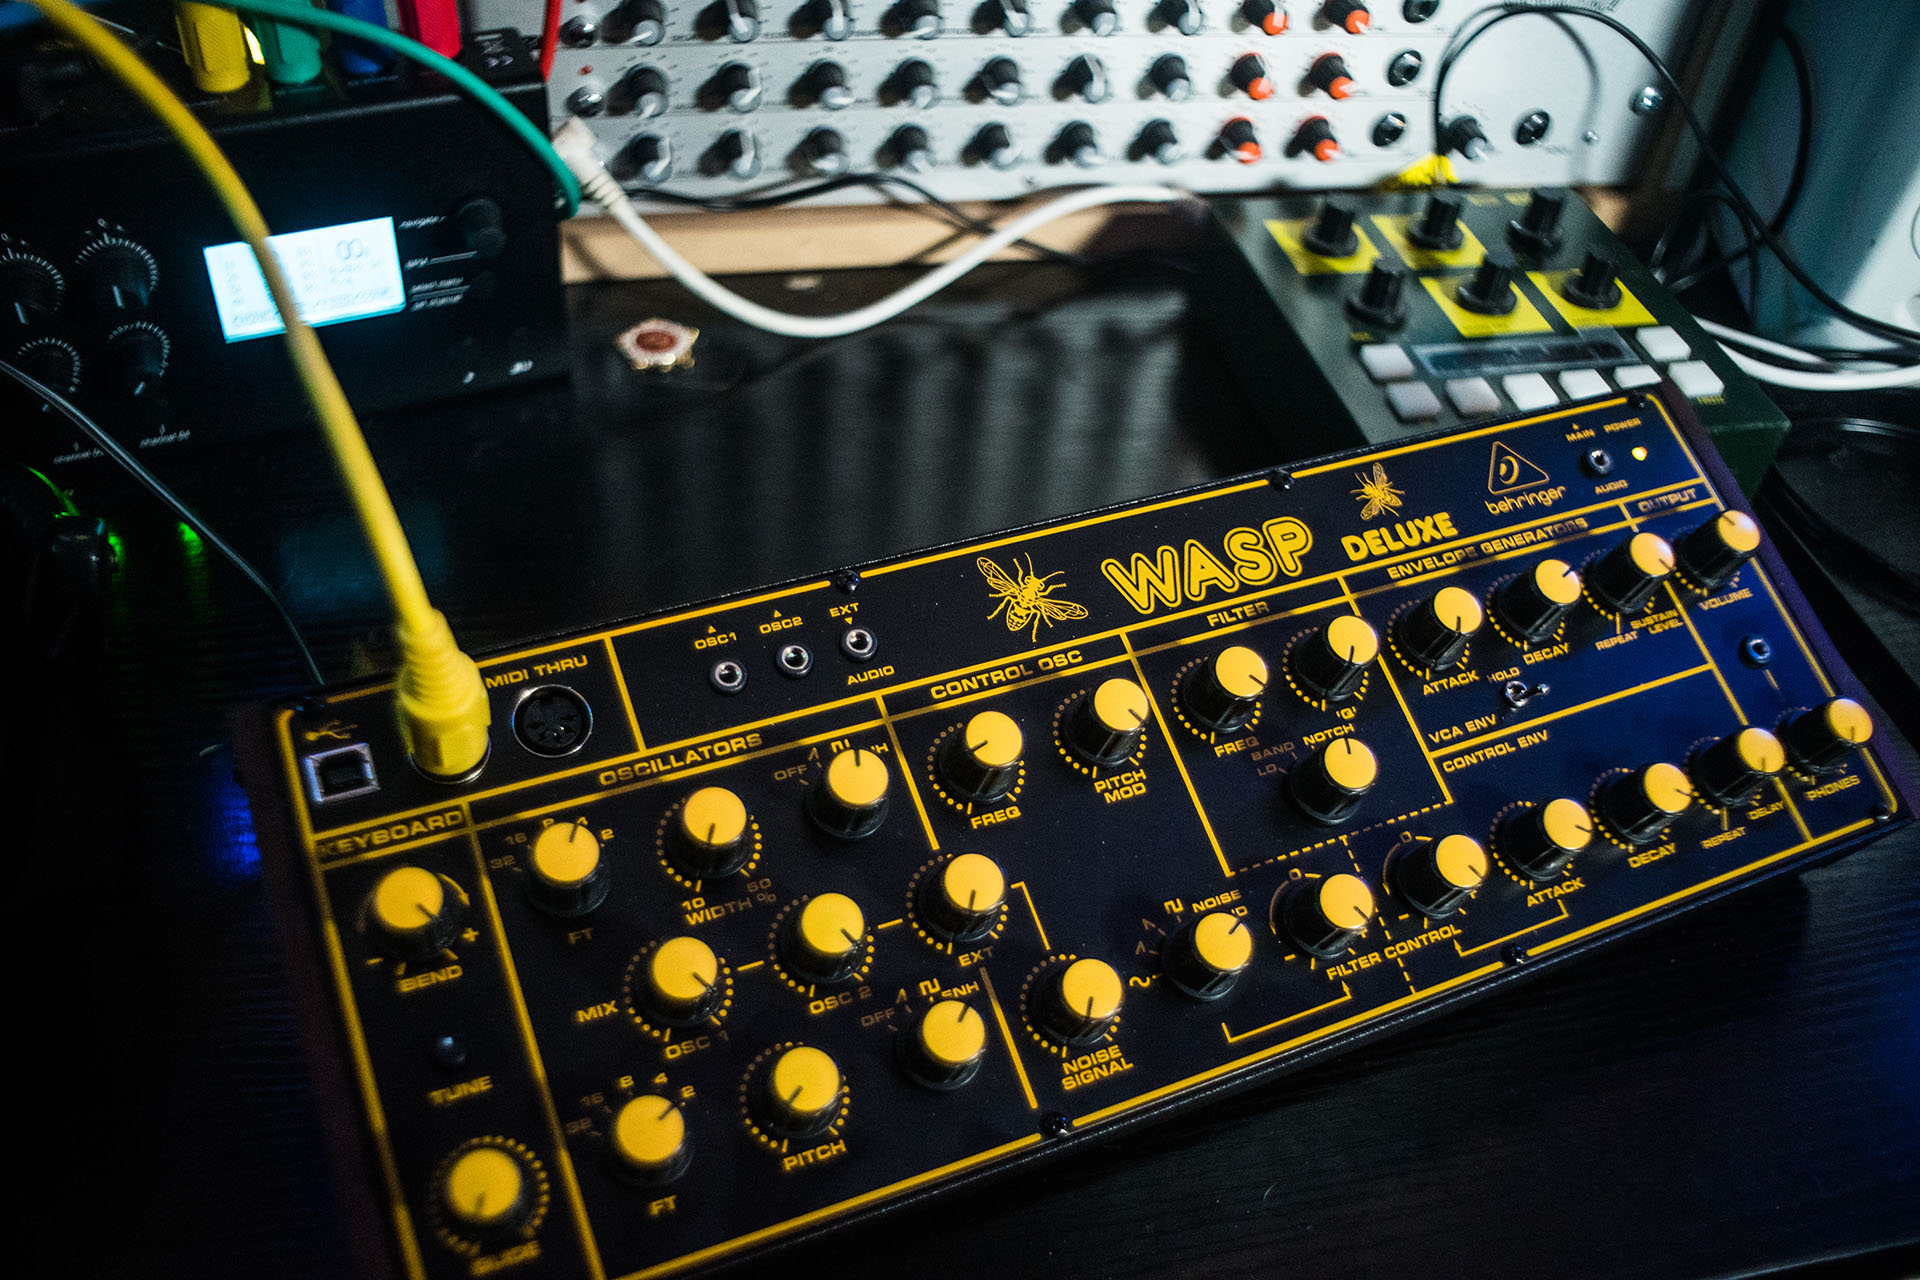 WASP Deluxe synth